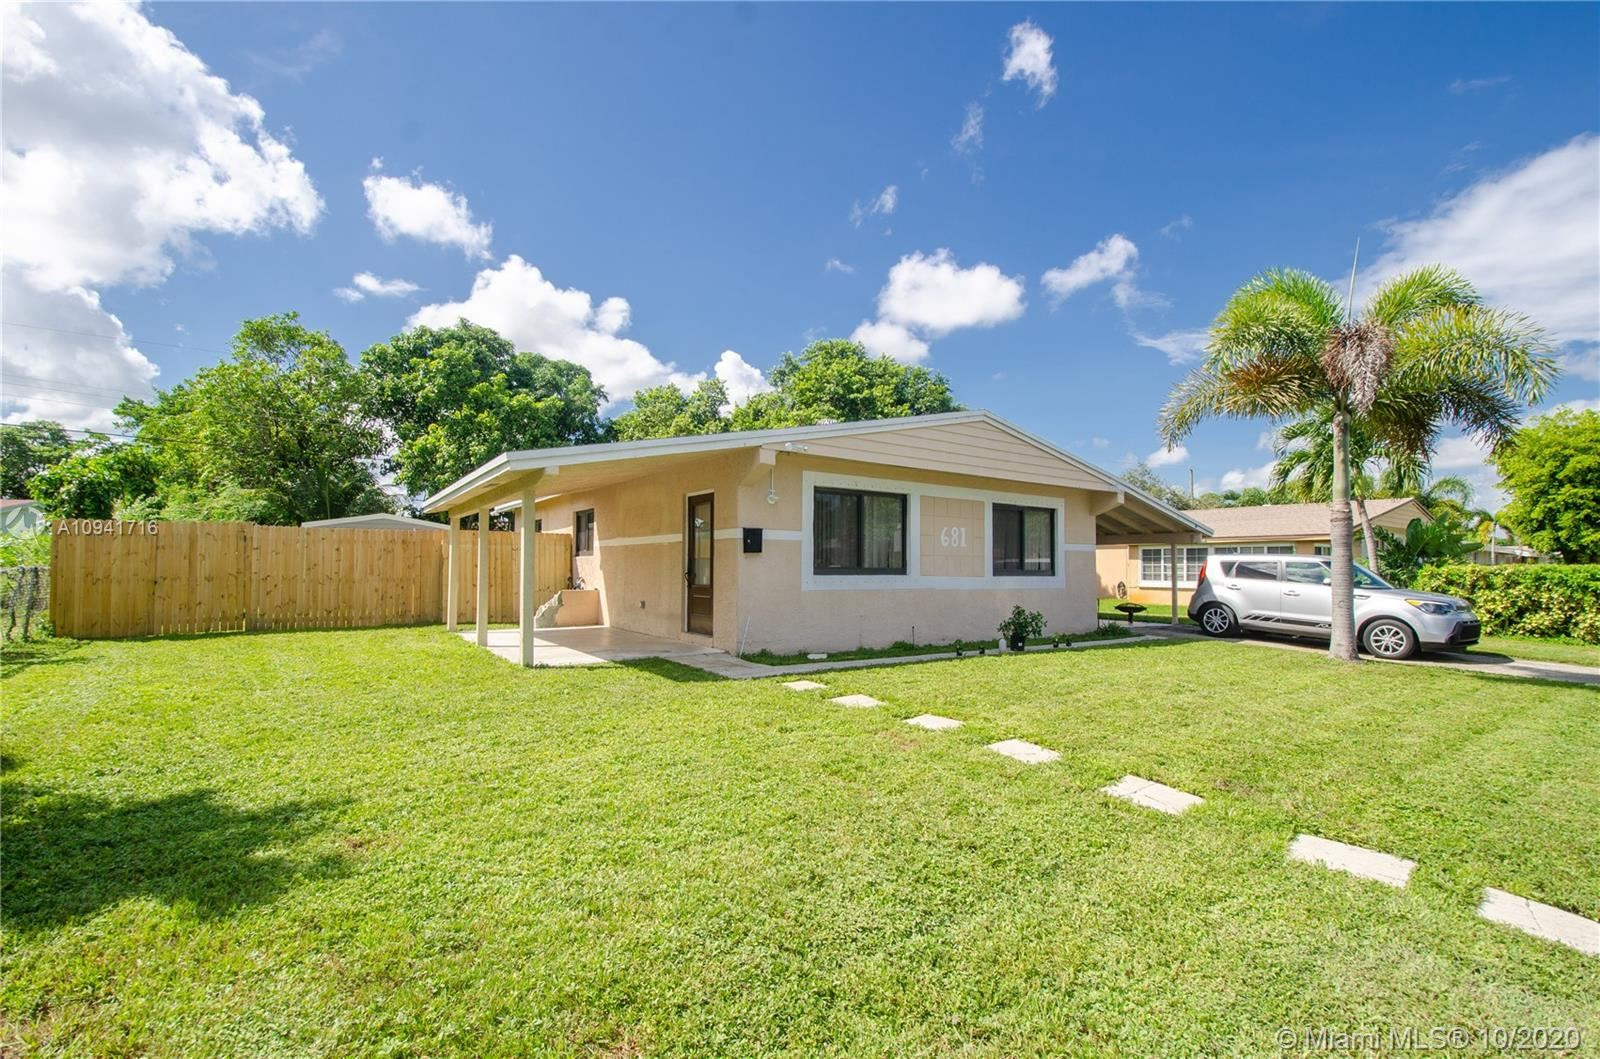 681 SW 29th Ave, Fort Lauderdale, FL 33312 - #: A10941716